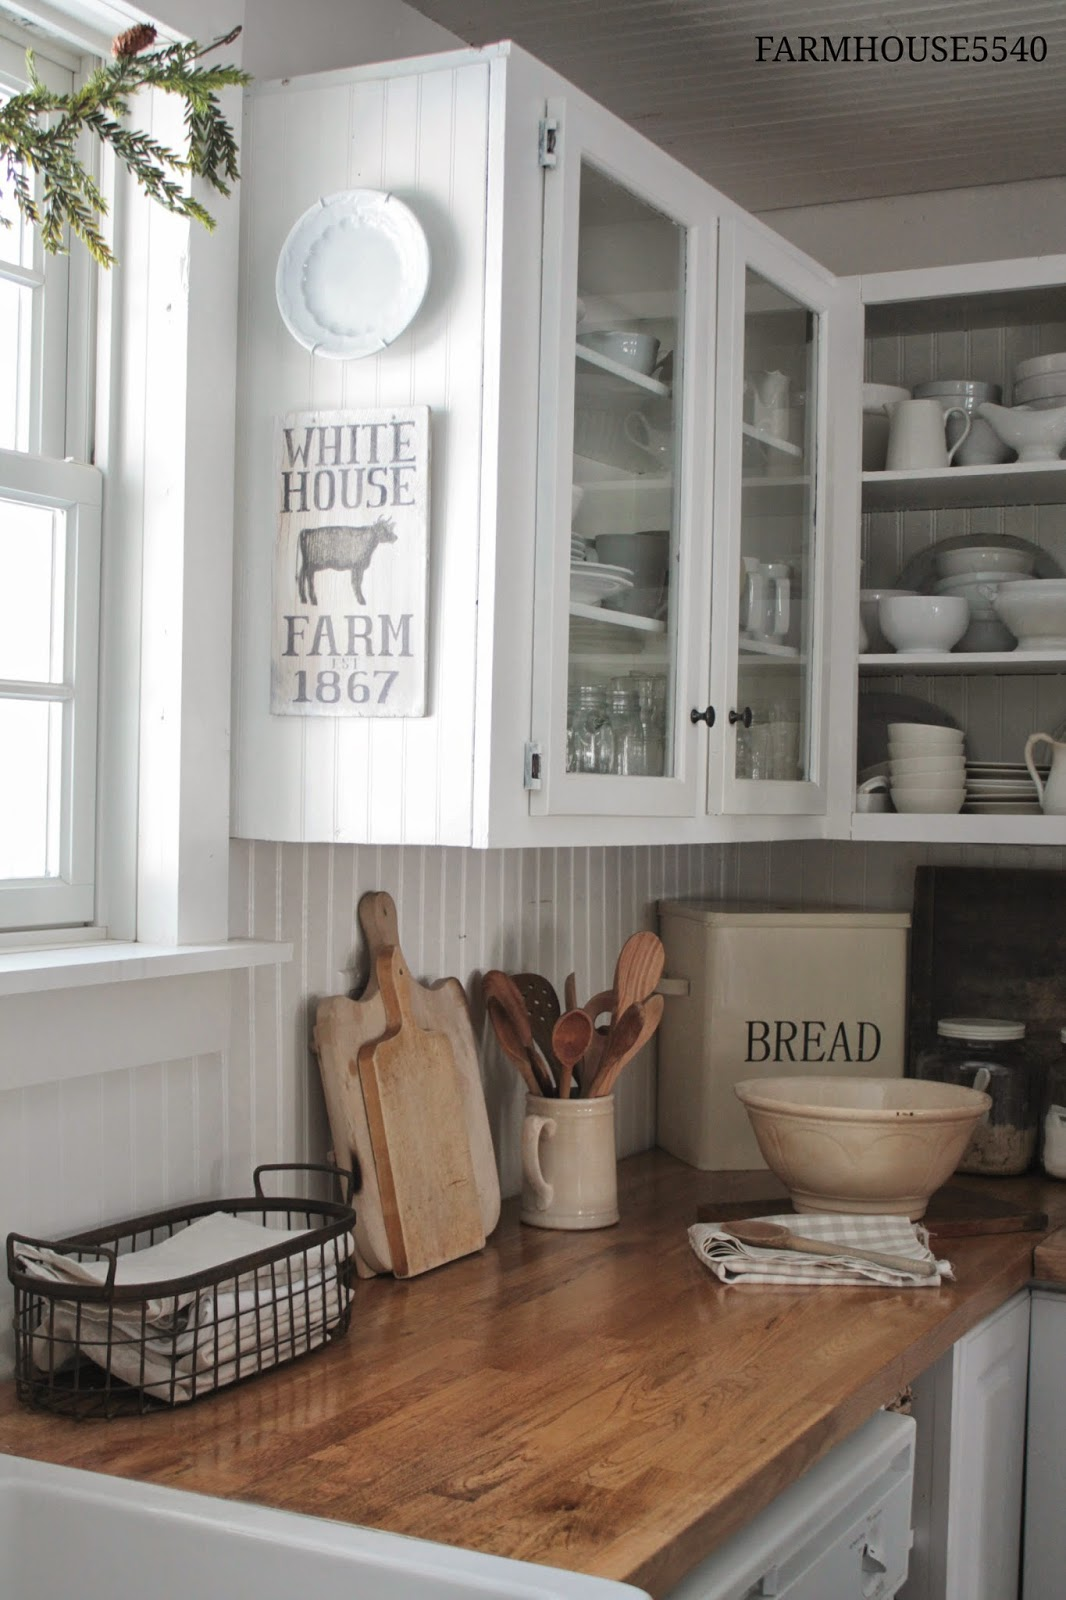 7 Ideas for a Farmhouse Inspired Kitchen on a BUDGET Unexpected Elegance